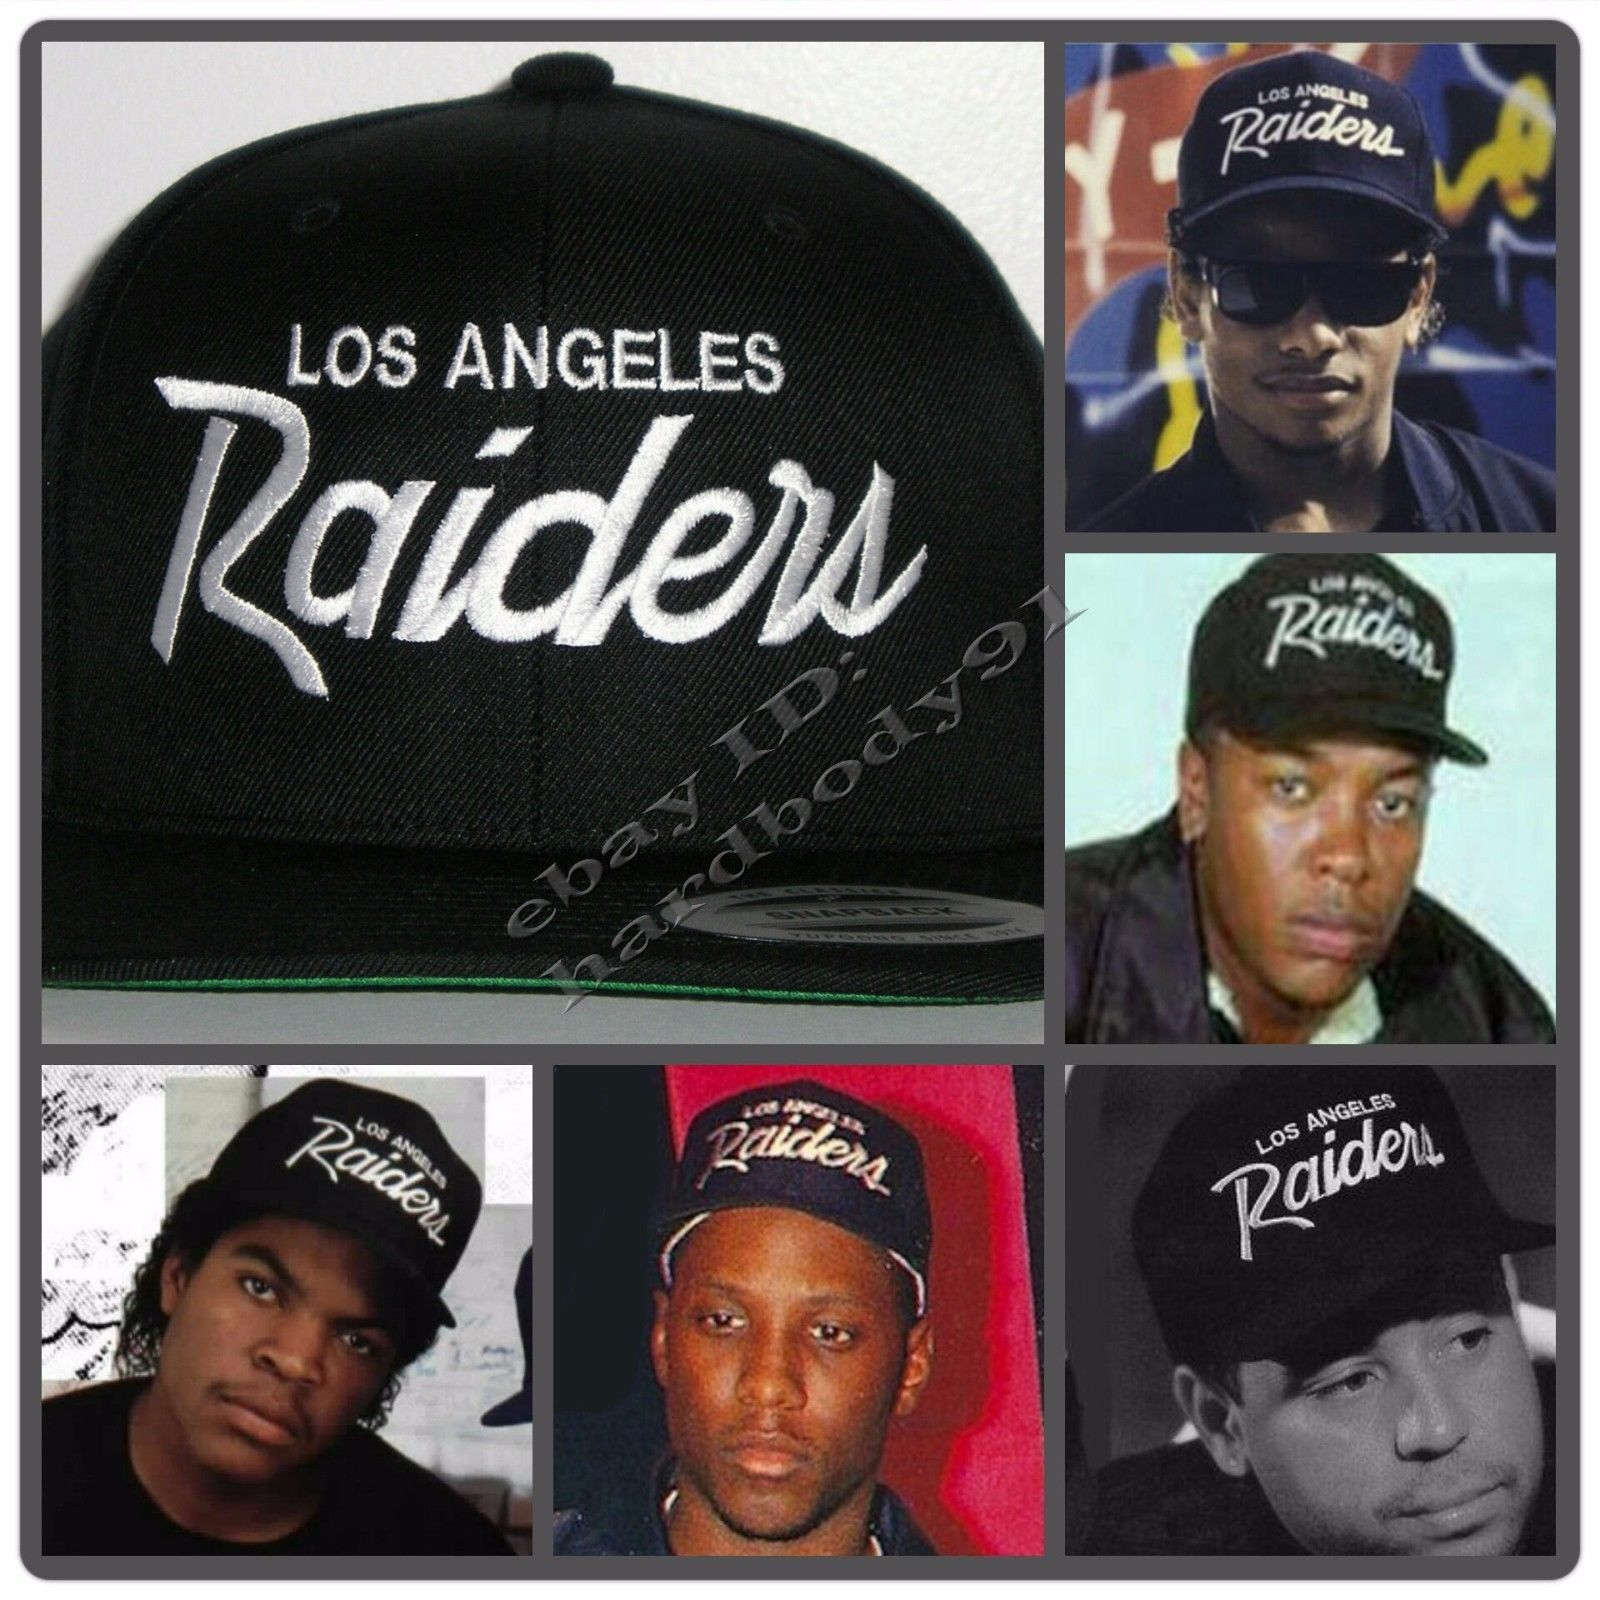 e87bd5c7badce9 ... promo code for more like the nwa ones brand is yuurong or something  vintage replica la